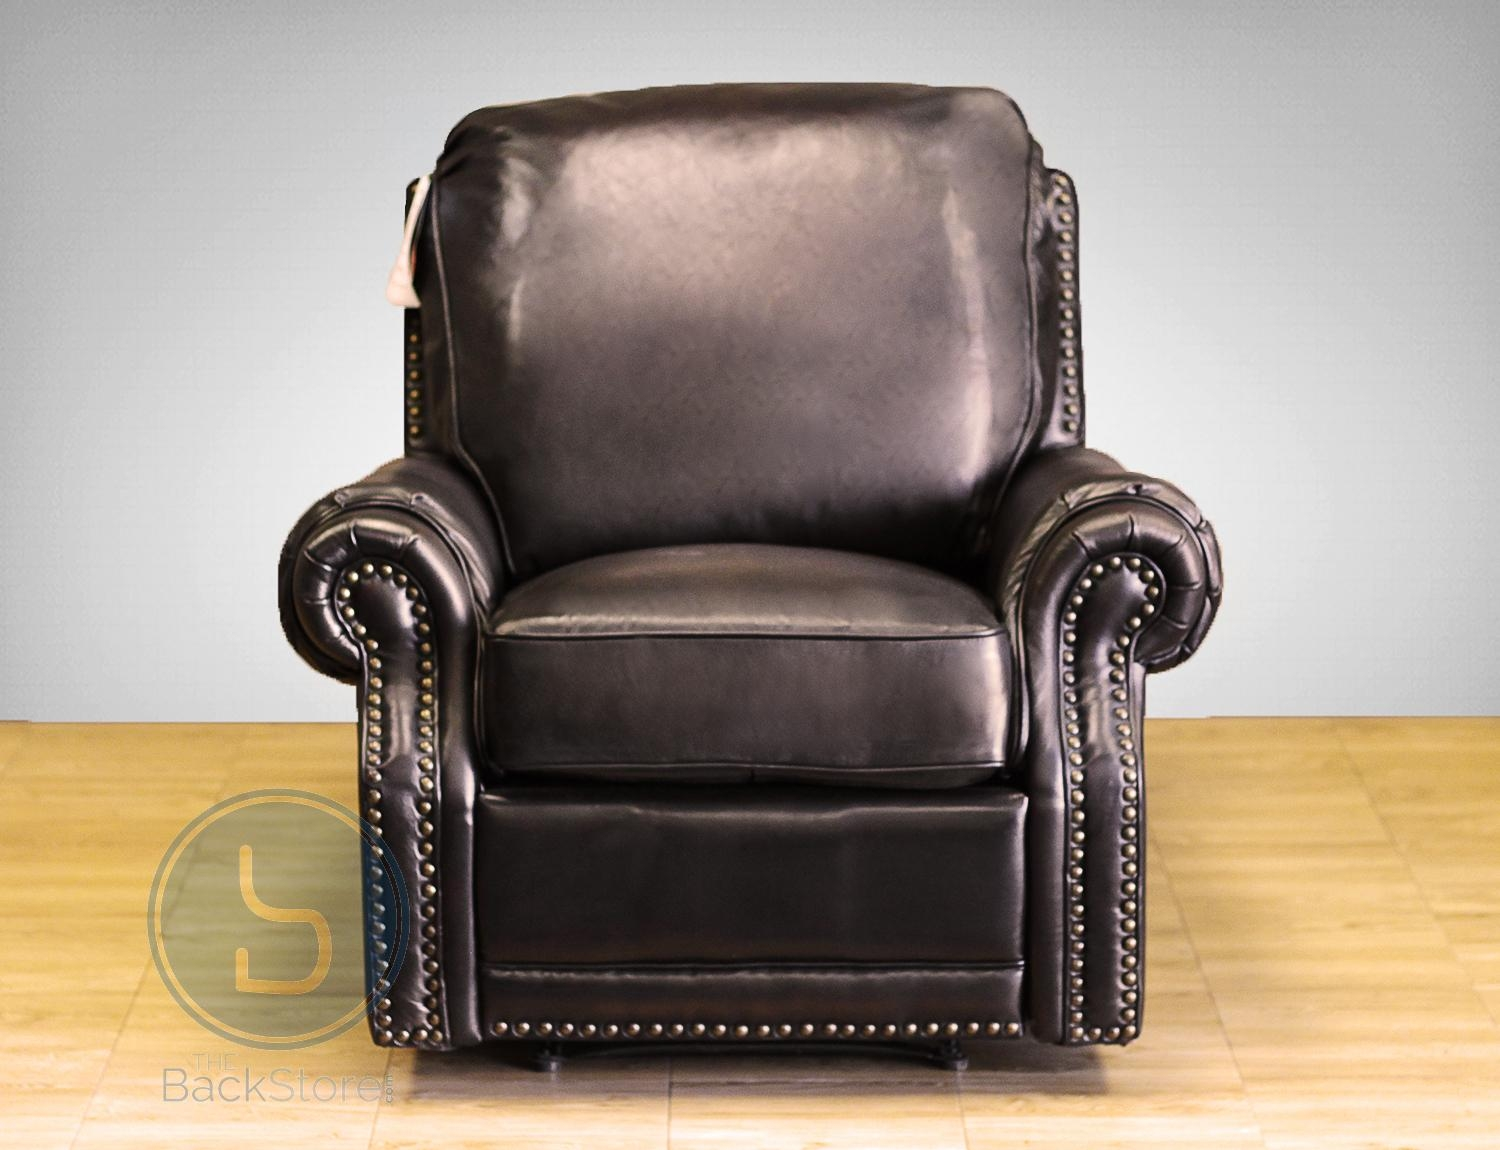 Barcalounger Premier Ii Leather Recliner Chair – Leather Recliner Within Barcalounger Sofas (Image 15 of 20)